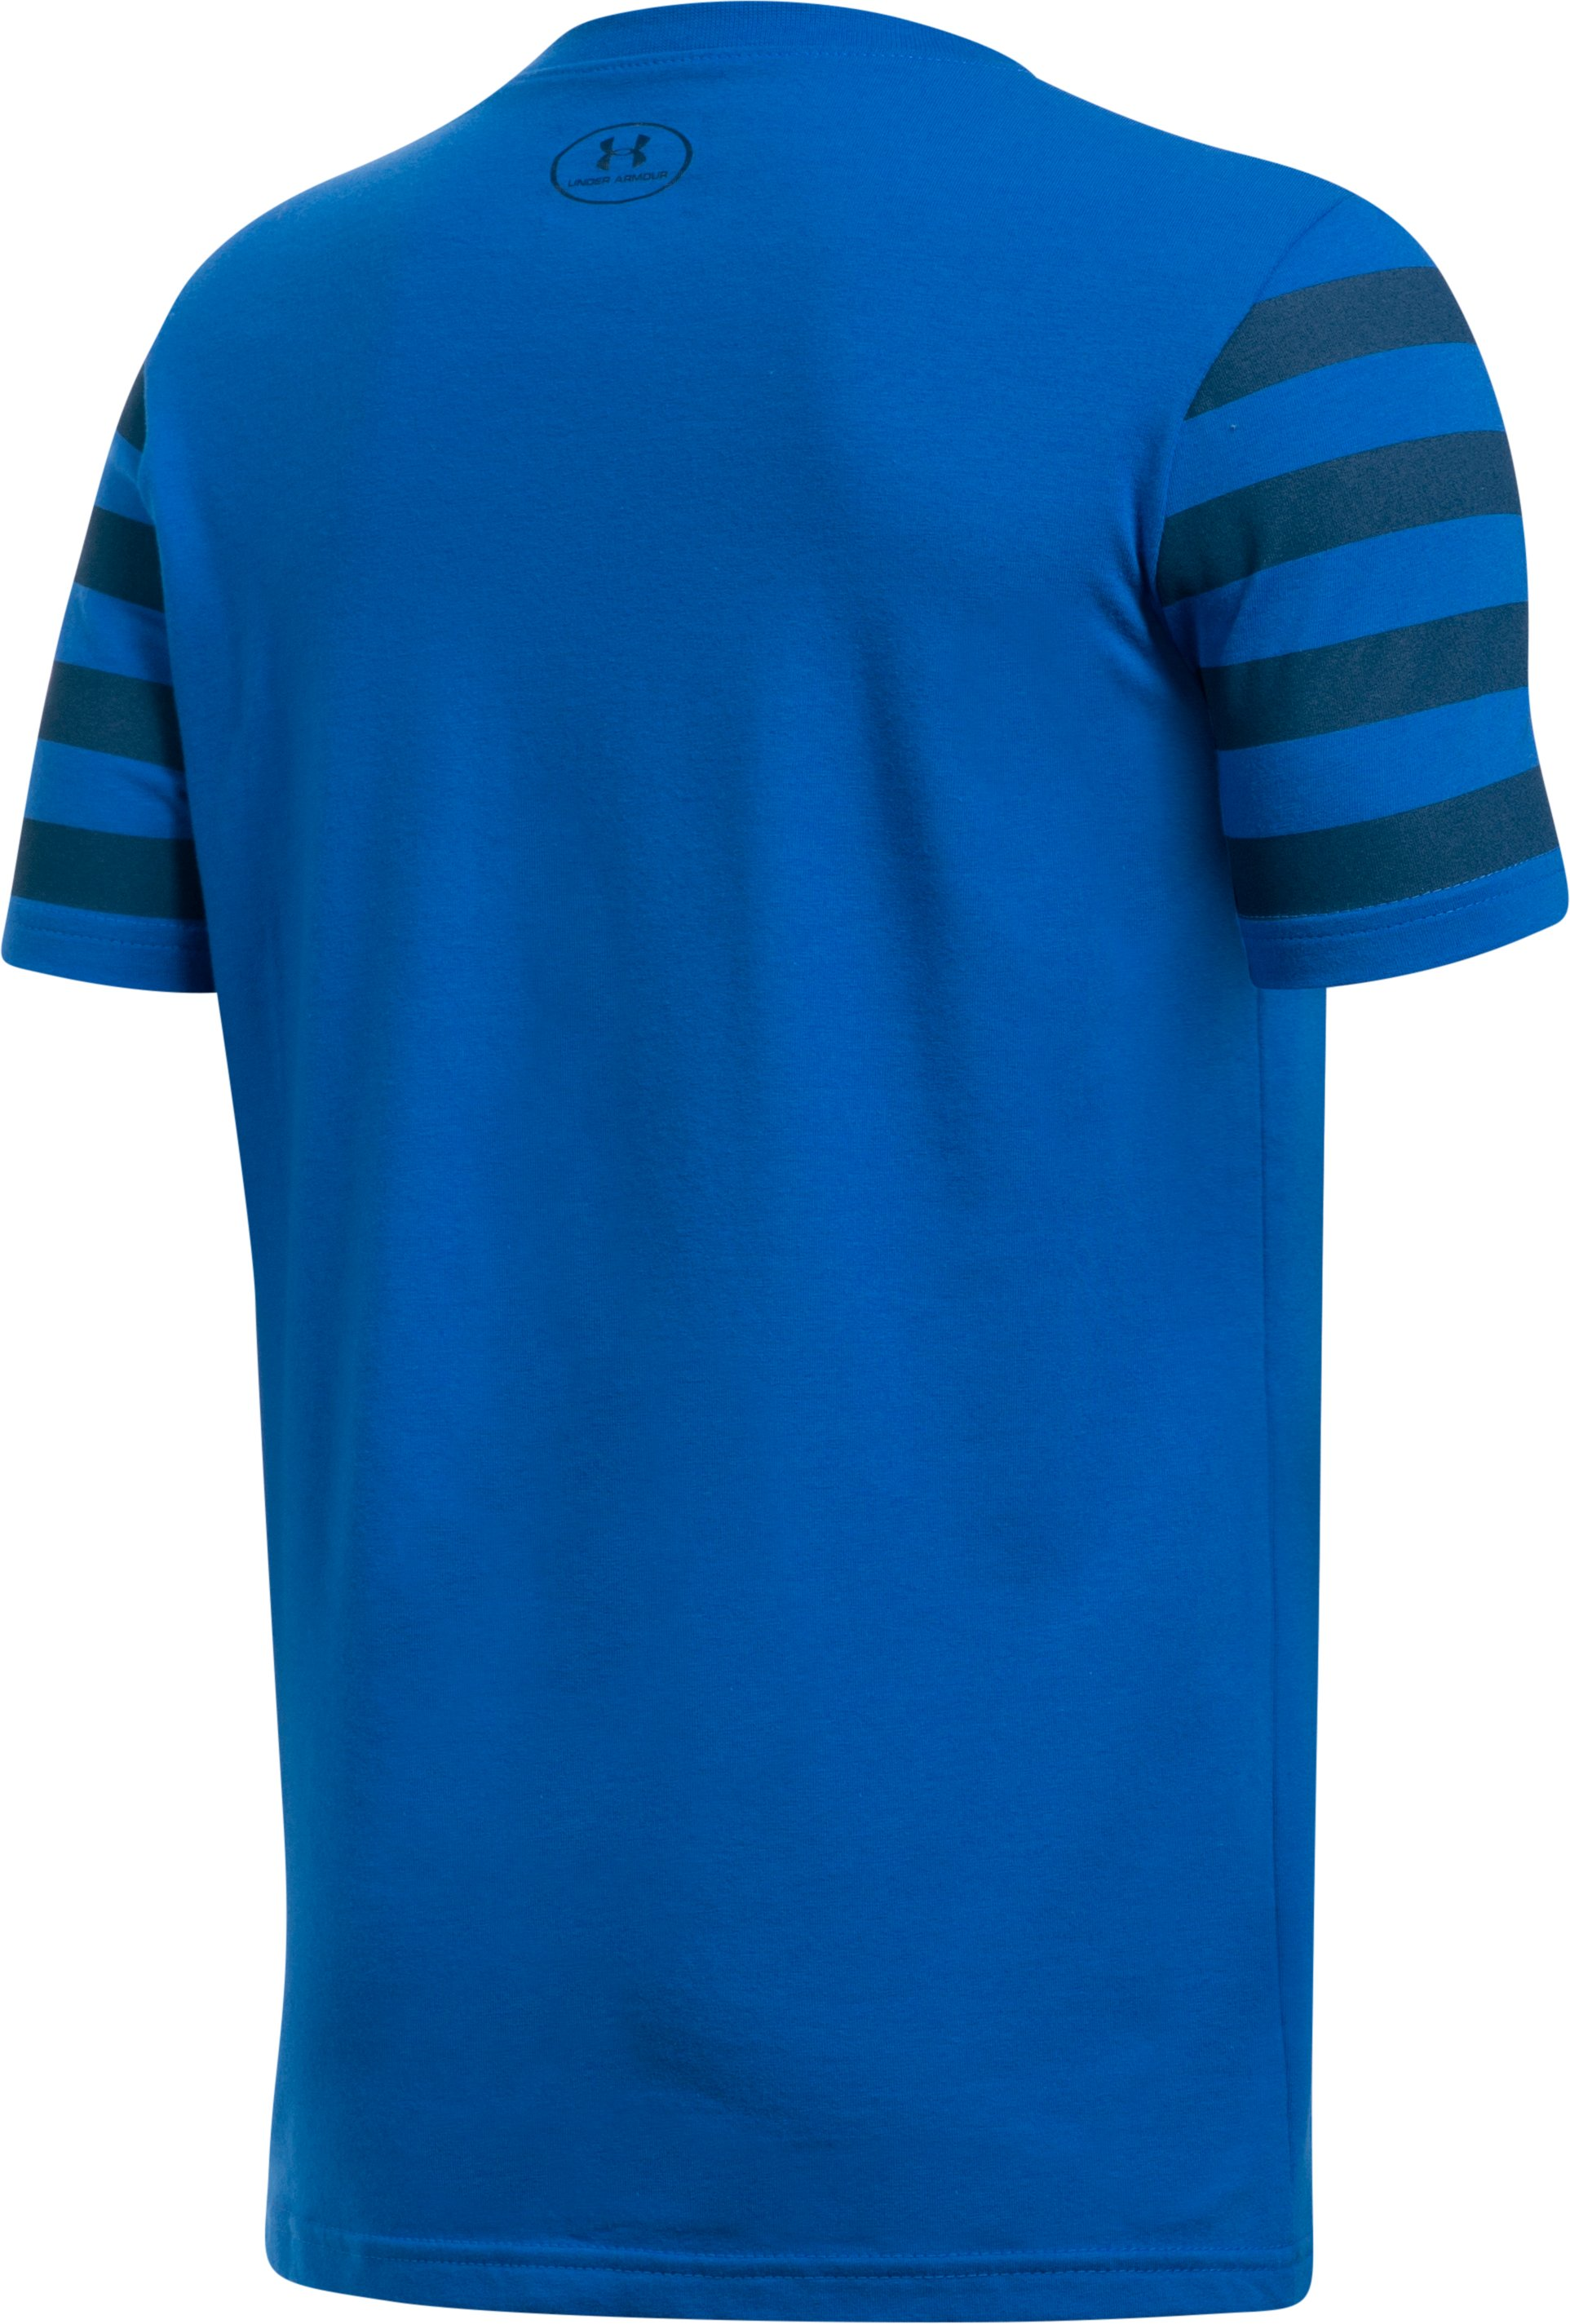 Boys' UA Big Logo Flag T-Shirt, ULTRA BLUE